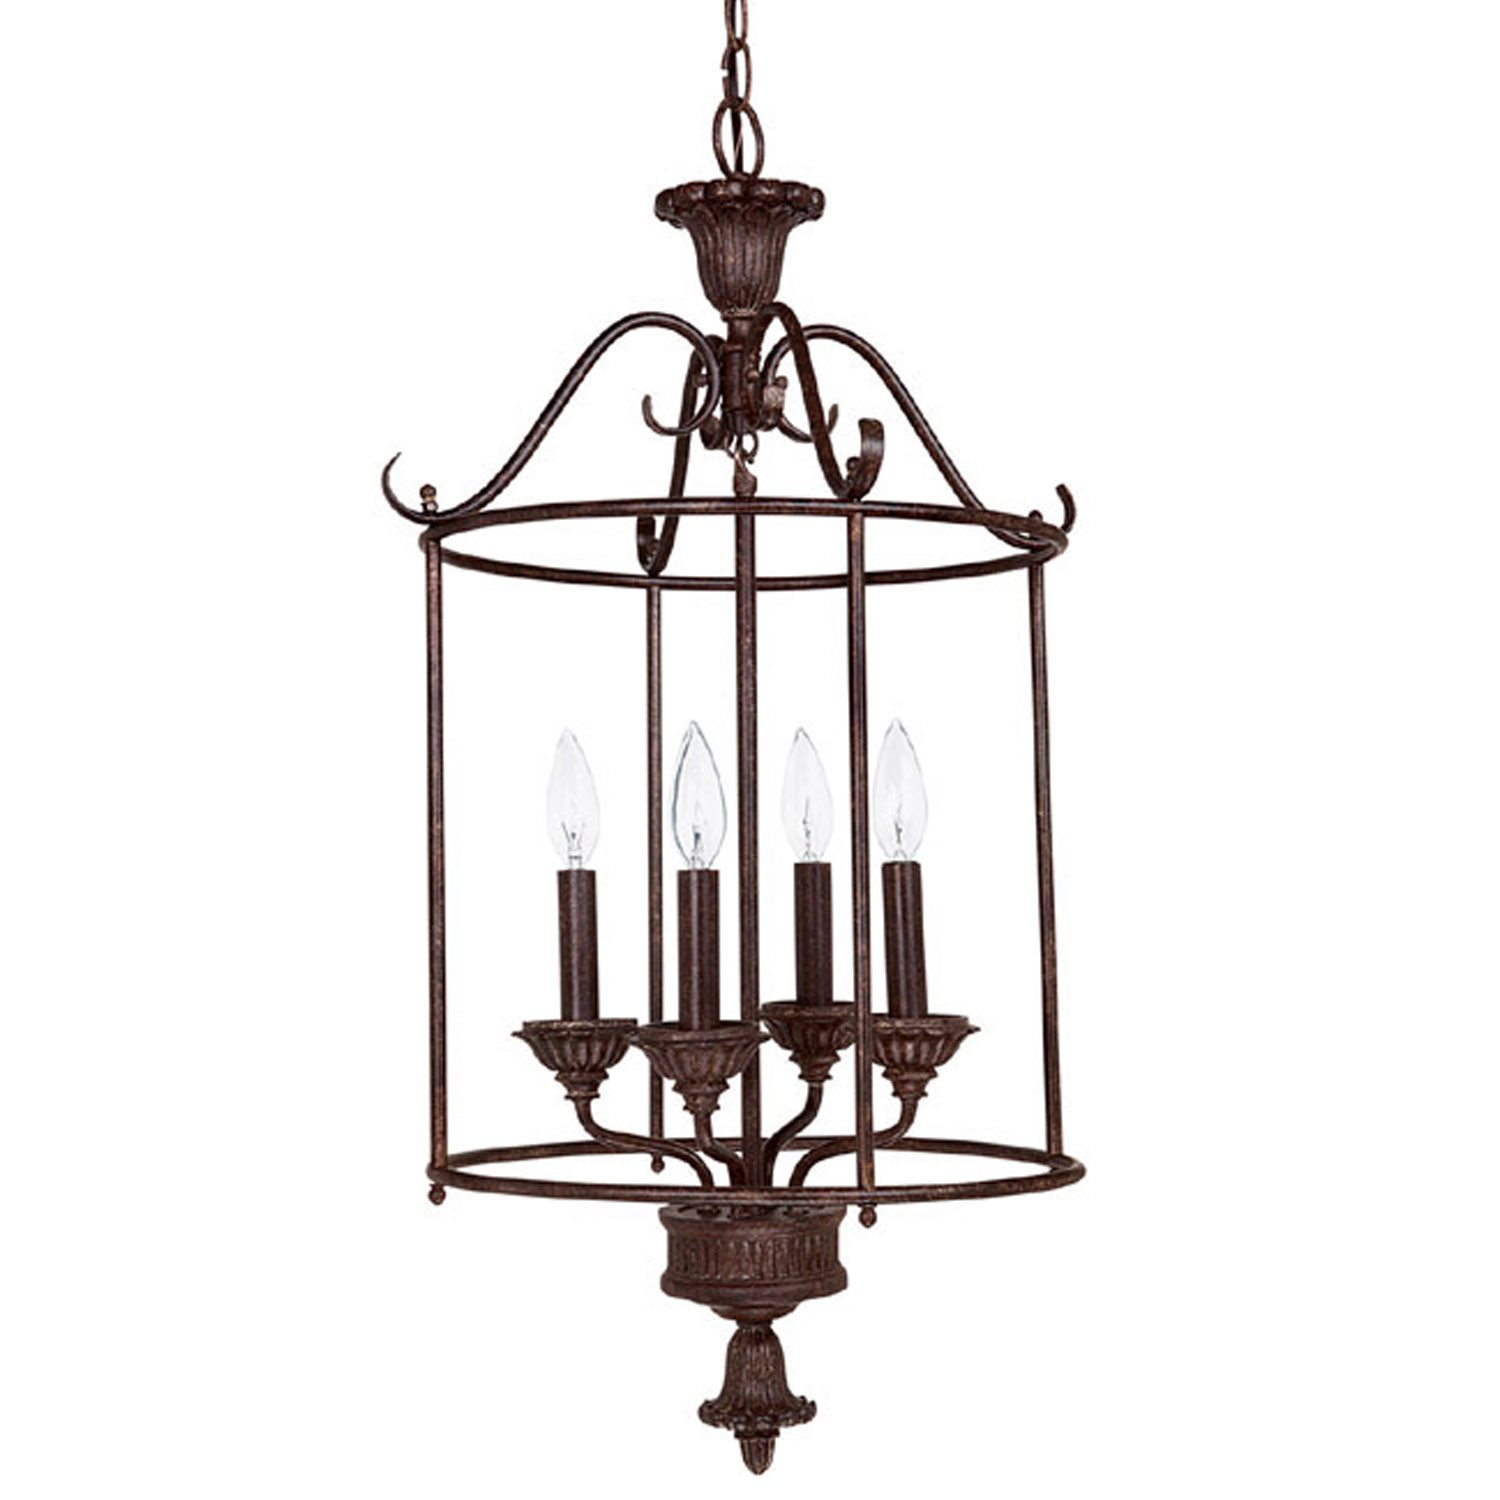 French Country Foyer Chandelier : Capital lighting ts country french traditional foyer